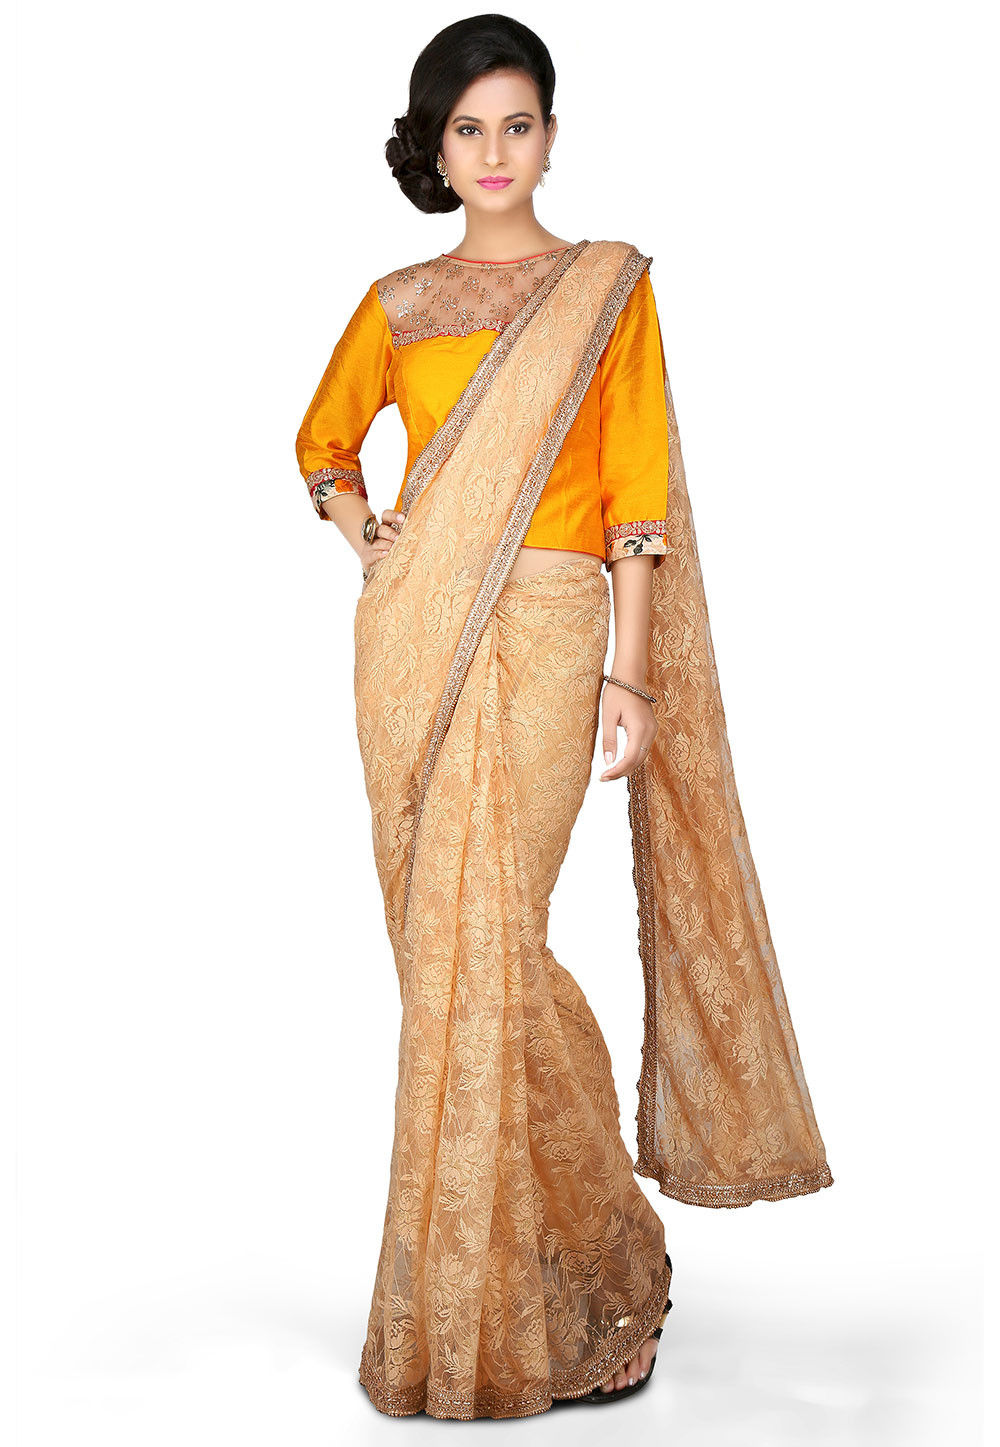 Gota Lace Border Chantelle Saree in Beige